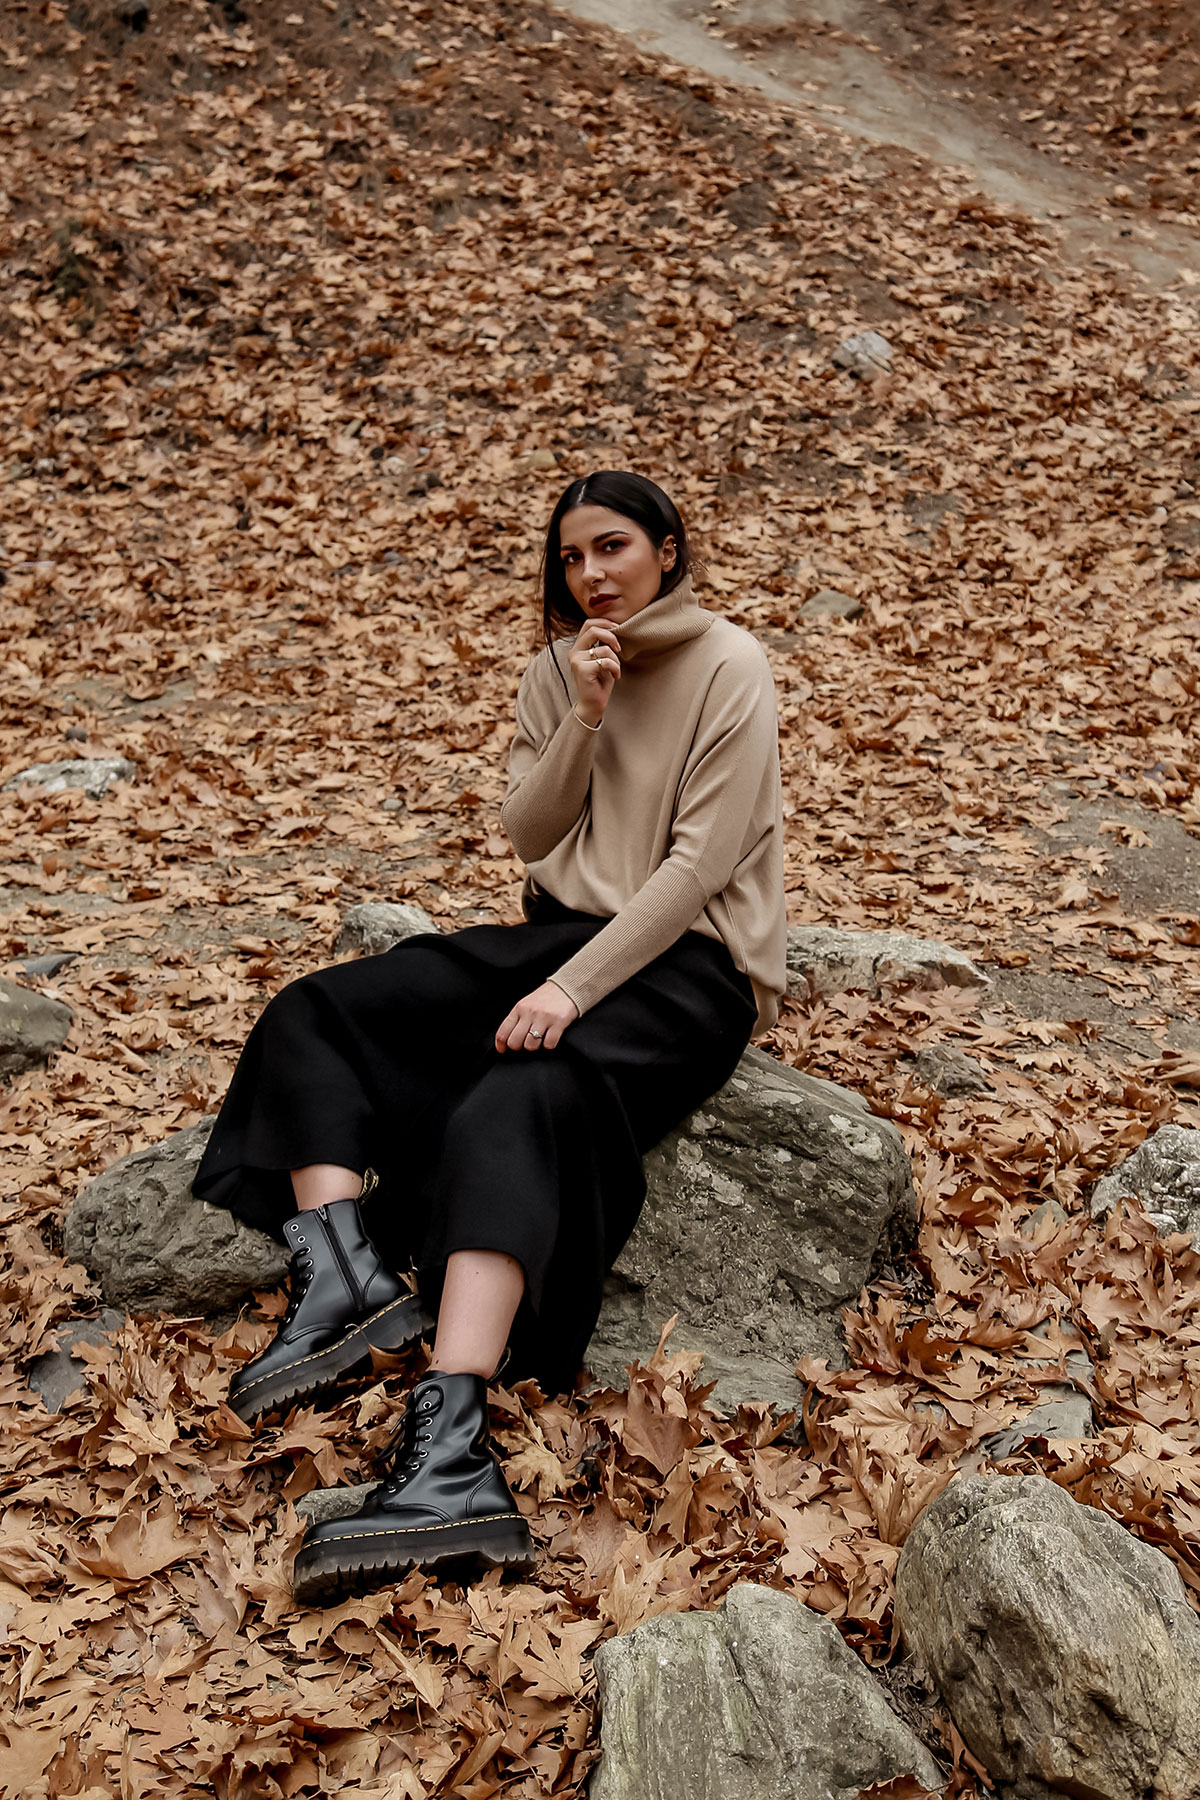 favourite fall wardrobe staples by Stella Asteria - wearing turtleneck sweater with knit skirt and Dr Martens boots